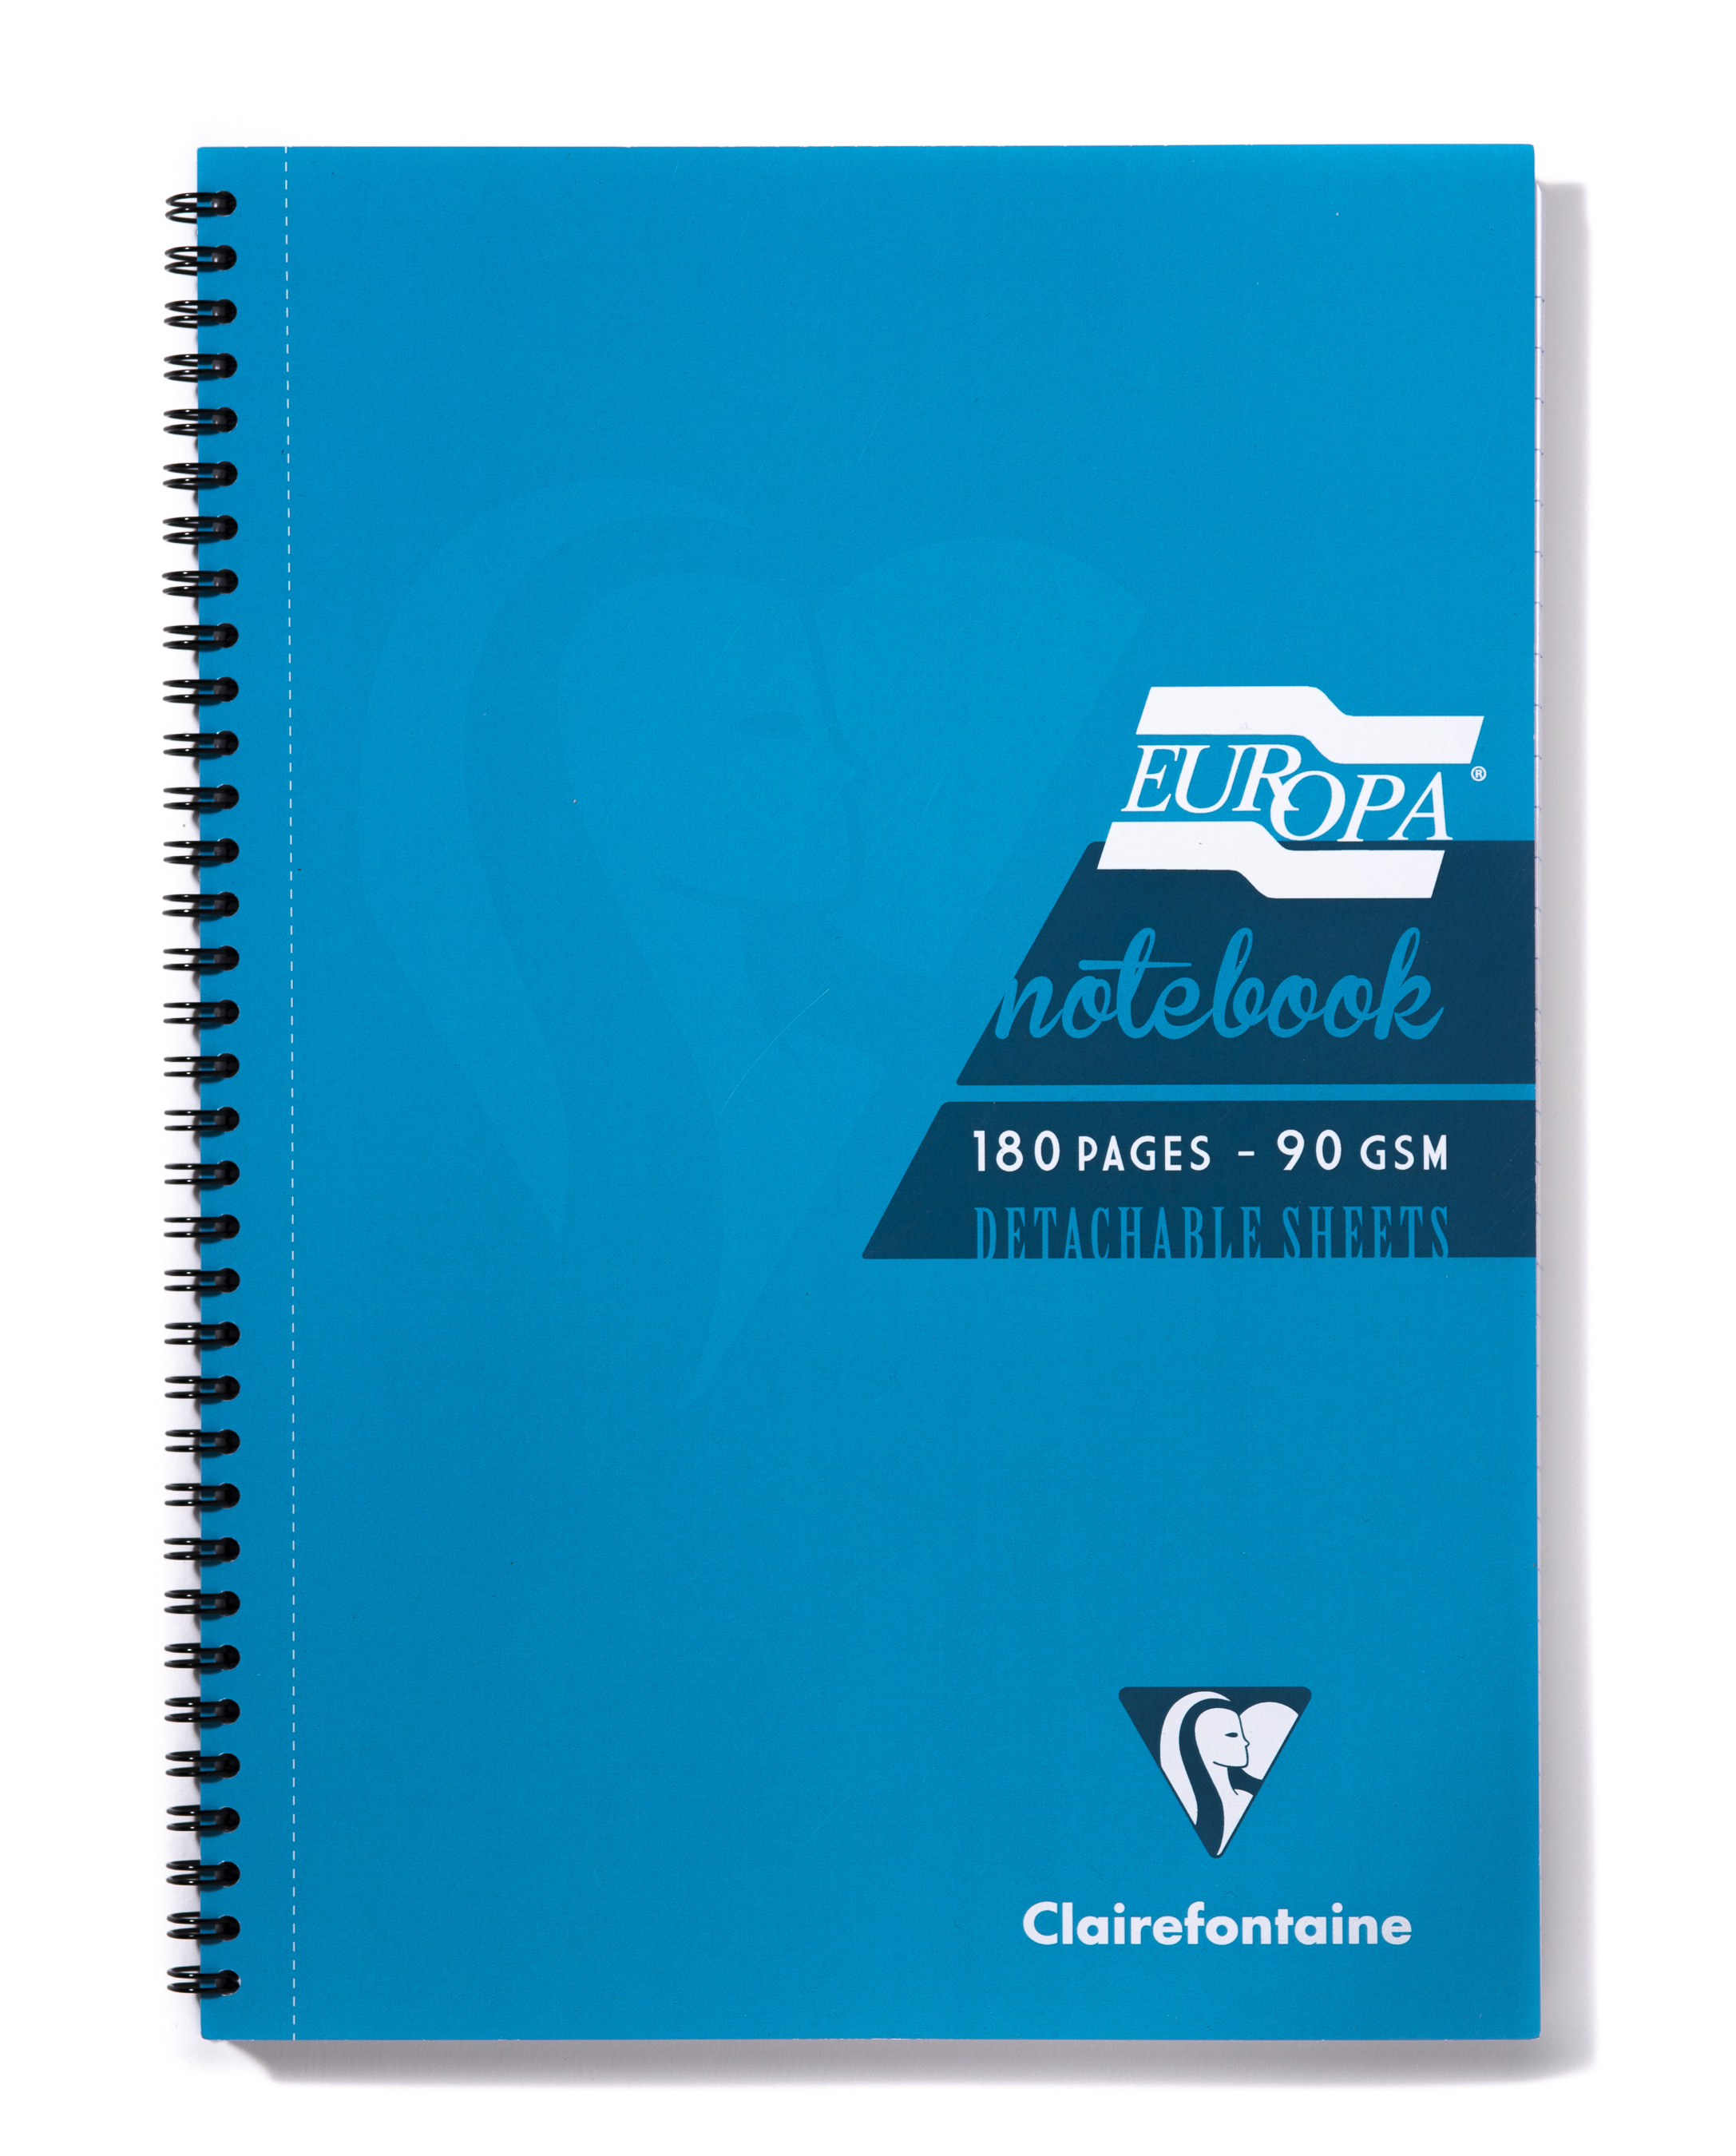 Europa A4 Sidebound Notebook Turquoise PK5